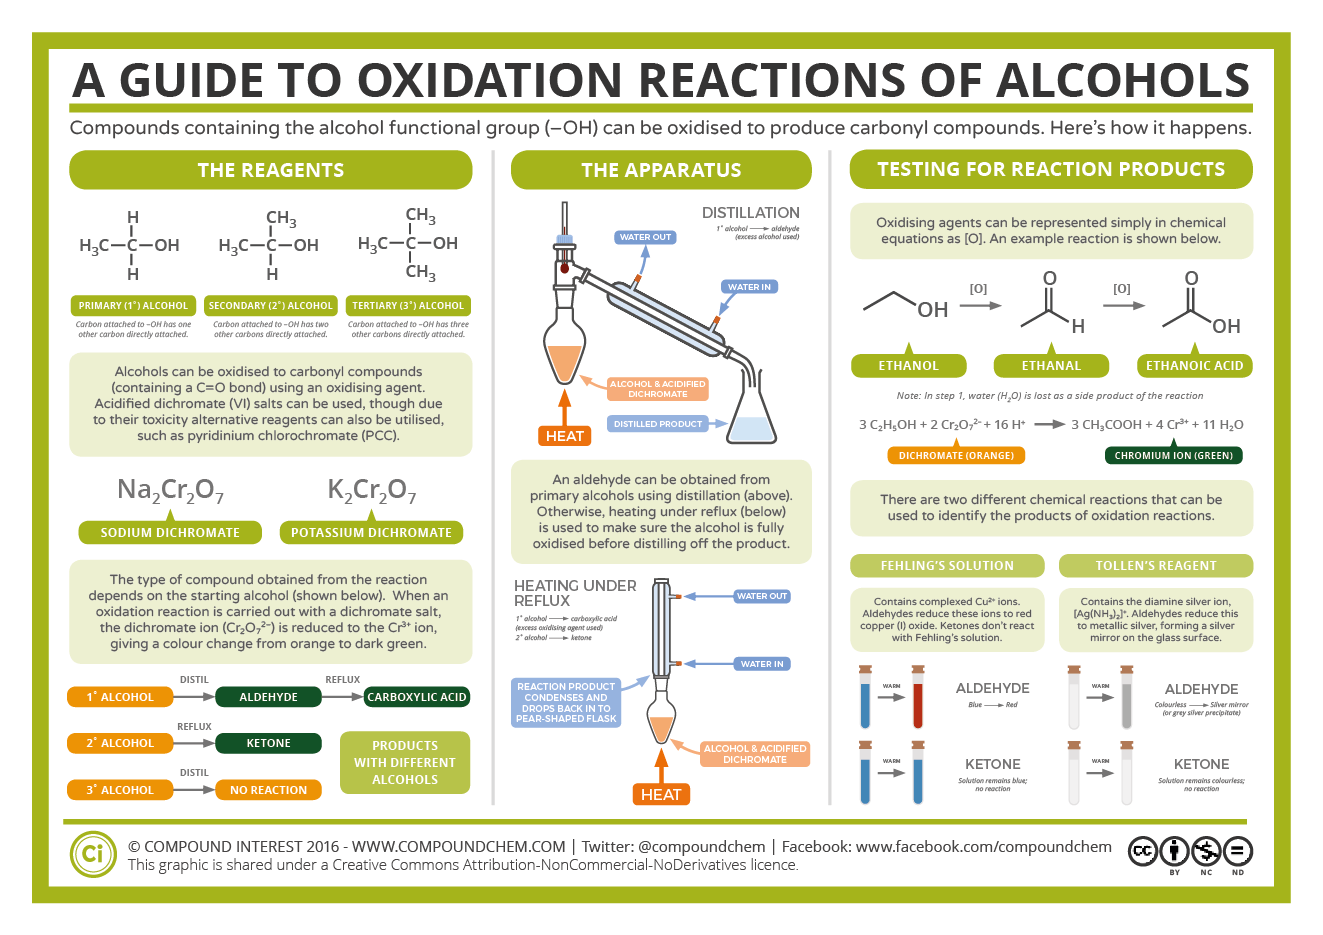 A Guide To Oxidation Reactions Of Alcohols